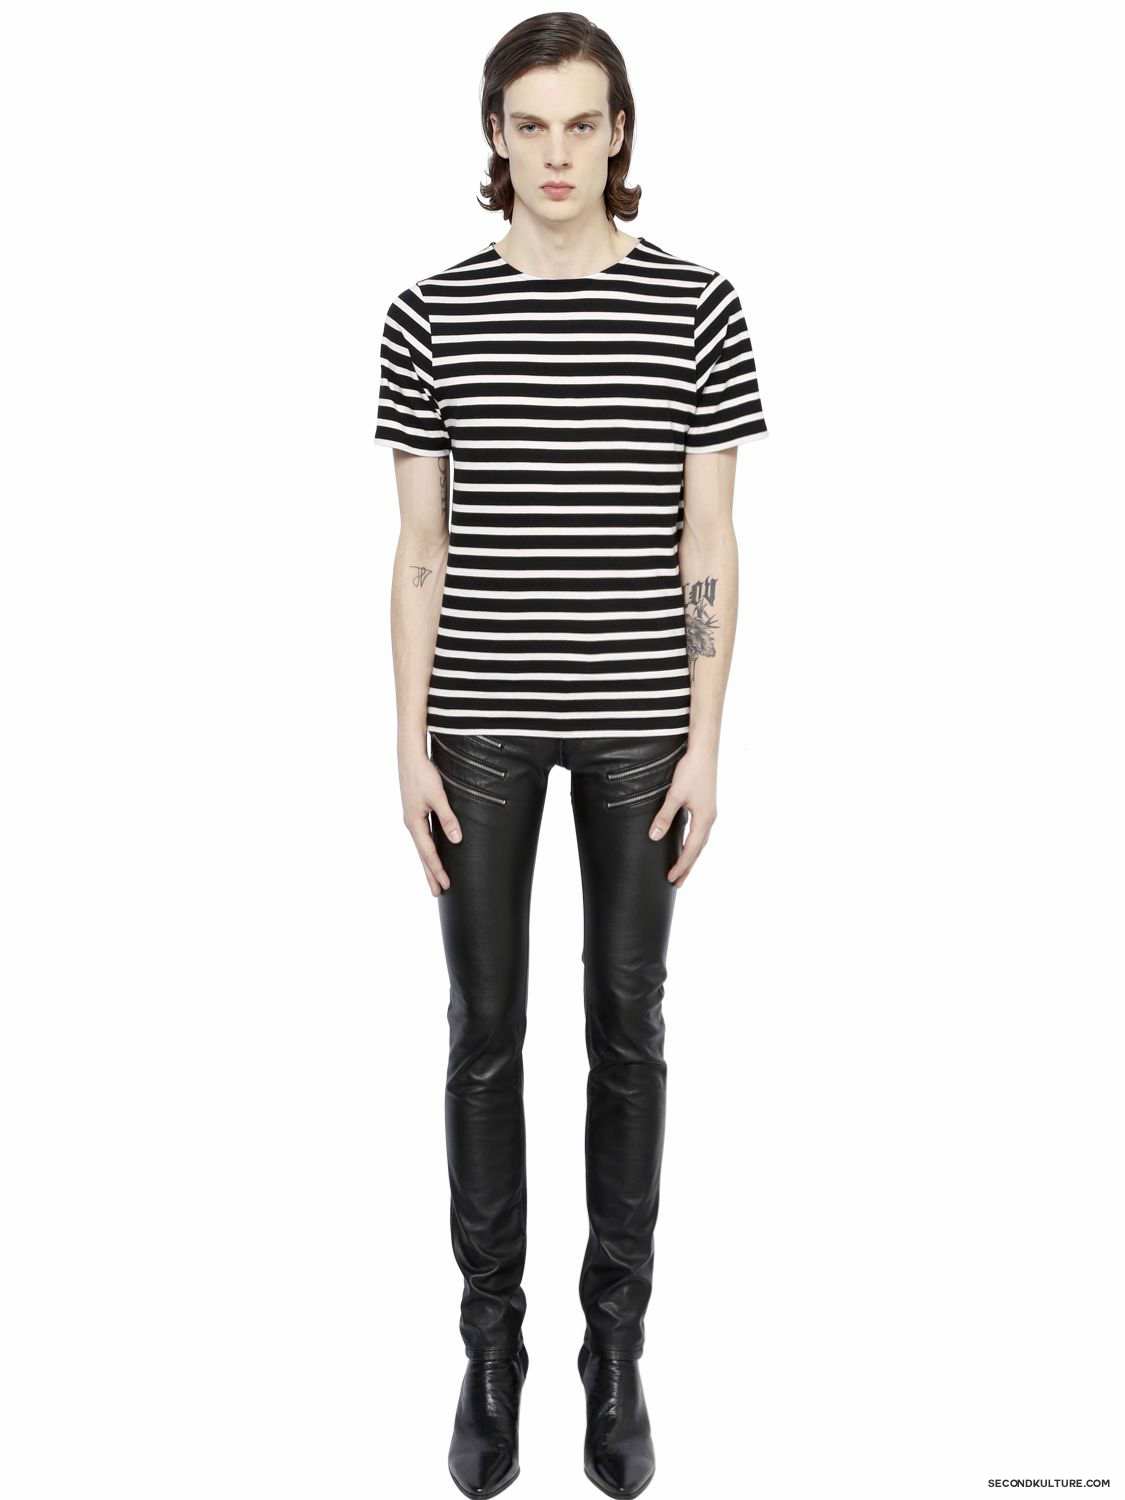 Saint-Laurent-Black-and-White-Striped-Print-T-Shirt-Fall-Winter-2015-2